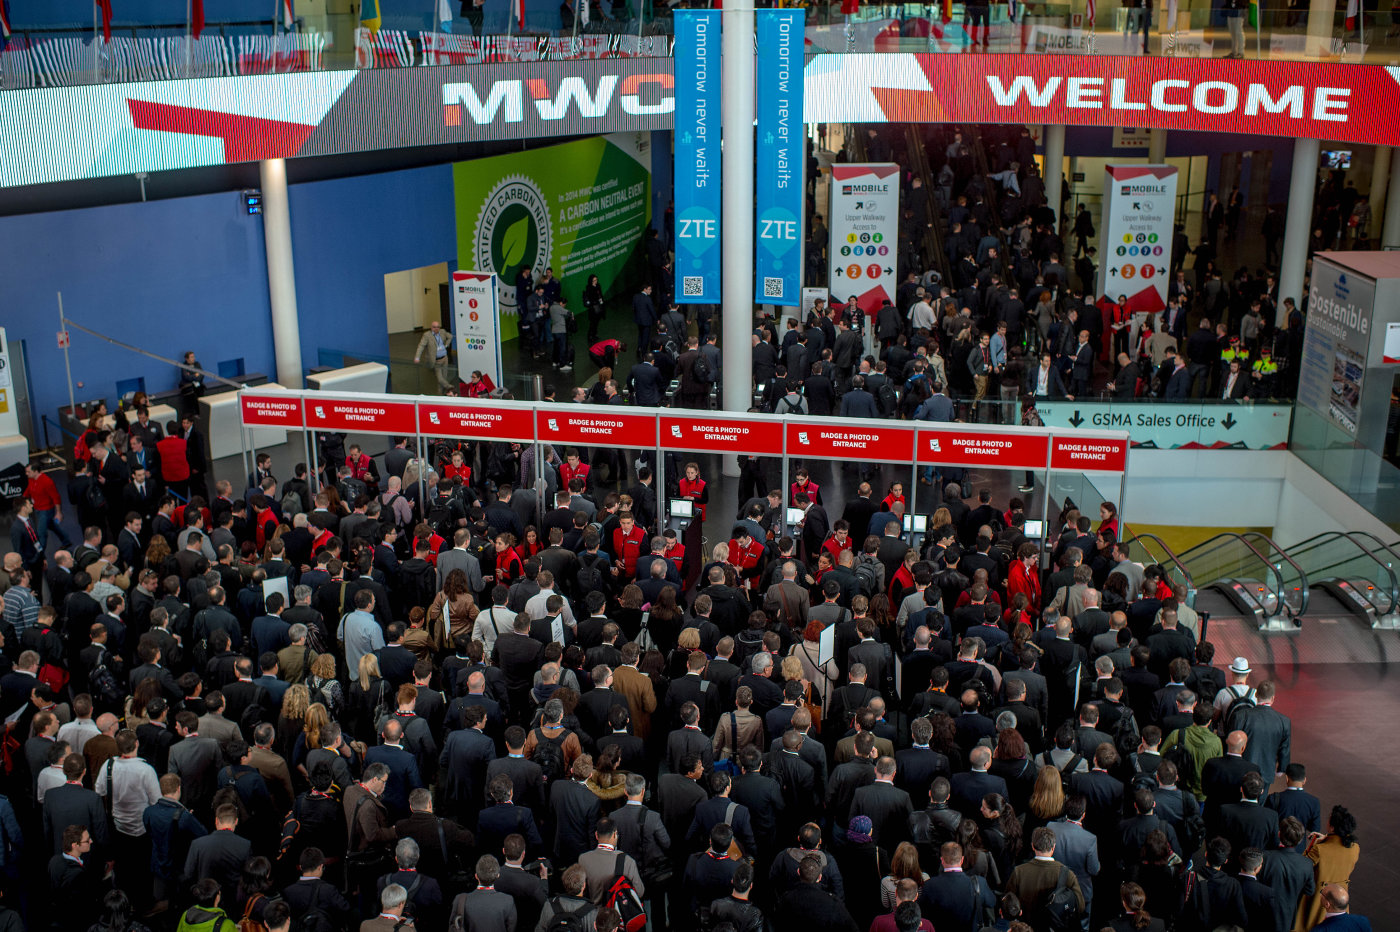 ABOVE: Record participation at MCW 2016 with nearly 101,000 attendees from 204 countries and territories present